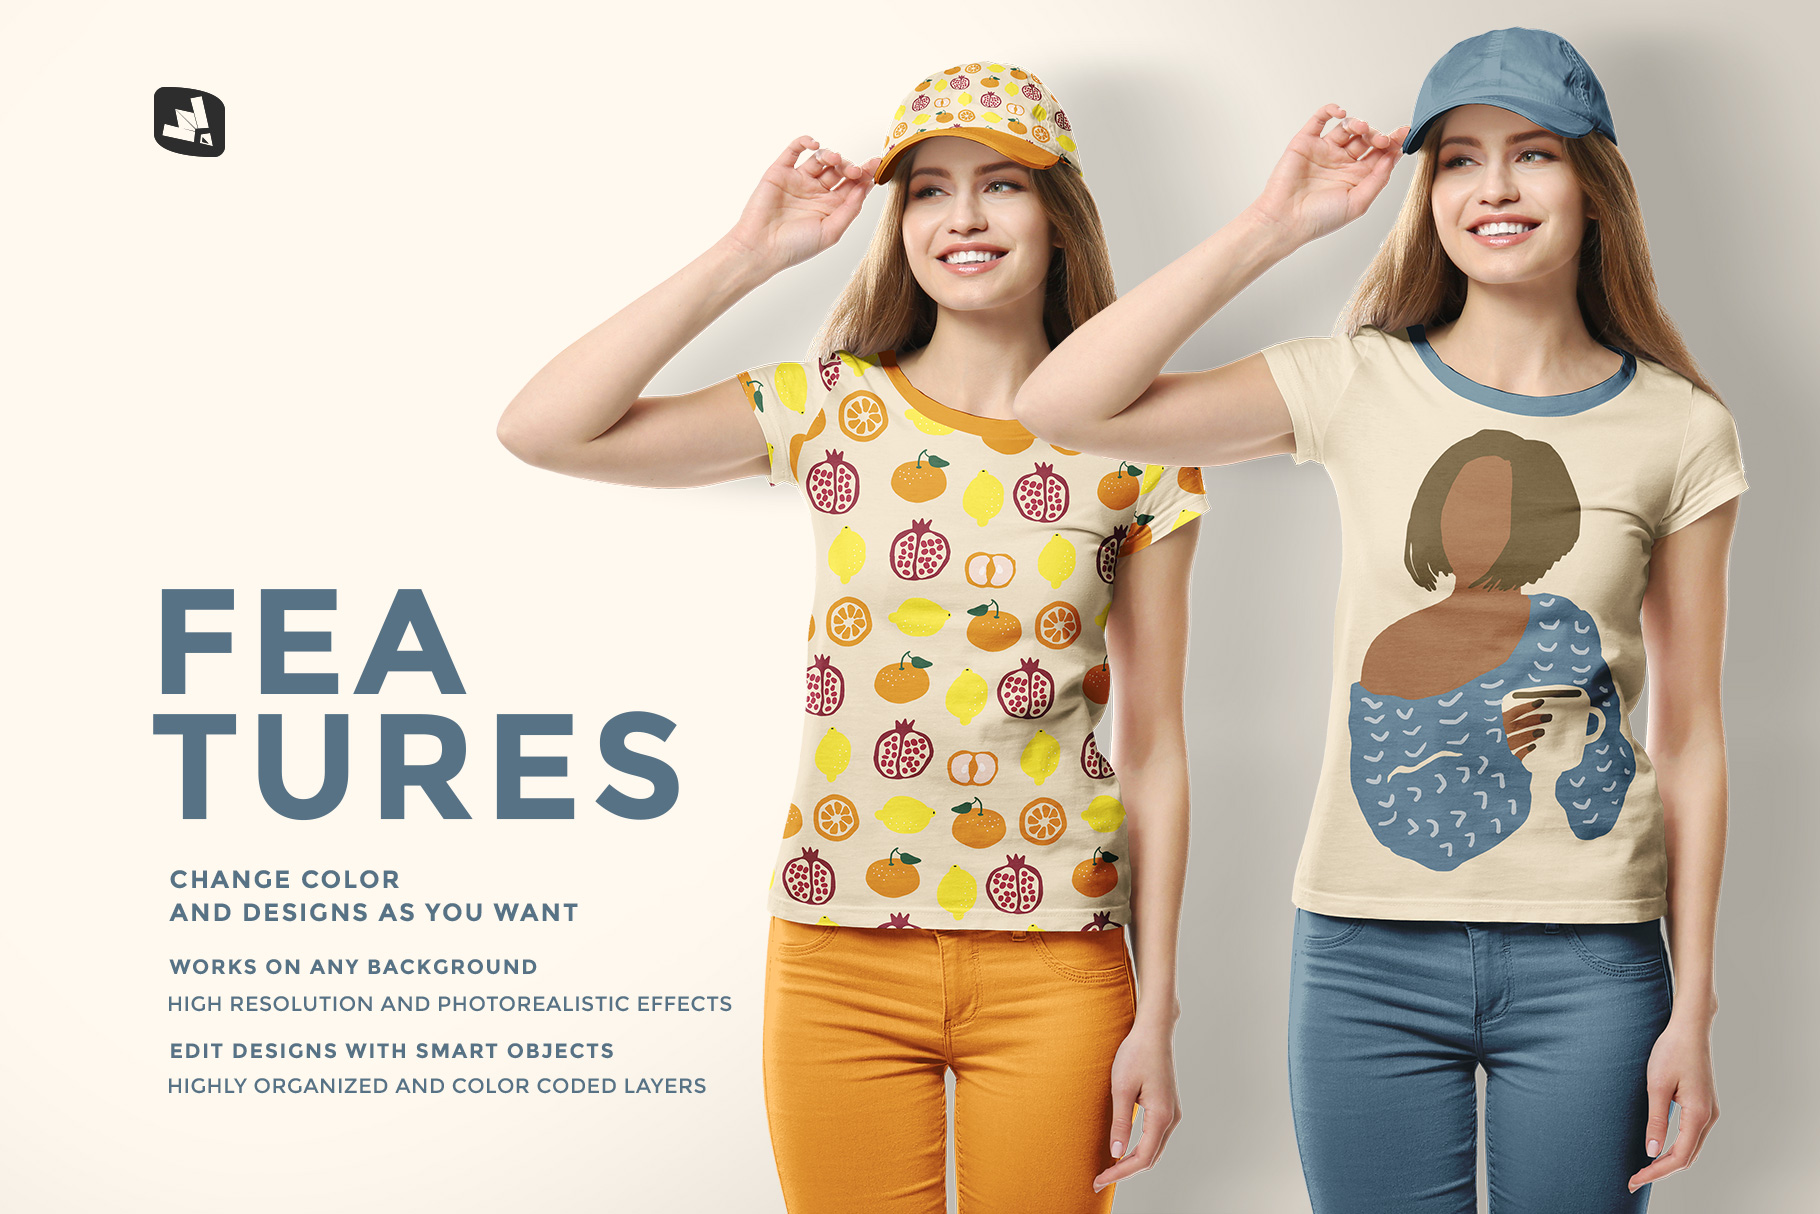 features of the women's tshirt with cap mockup